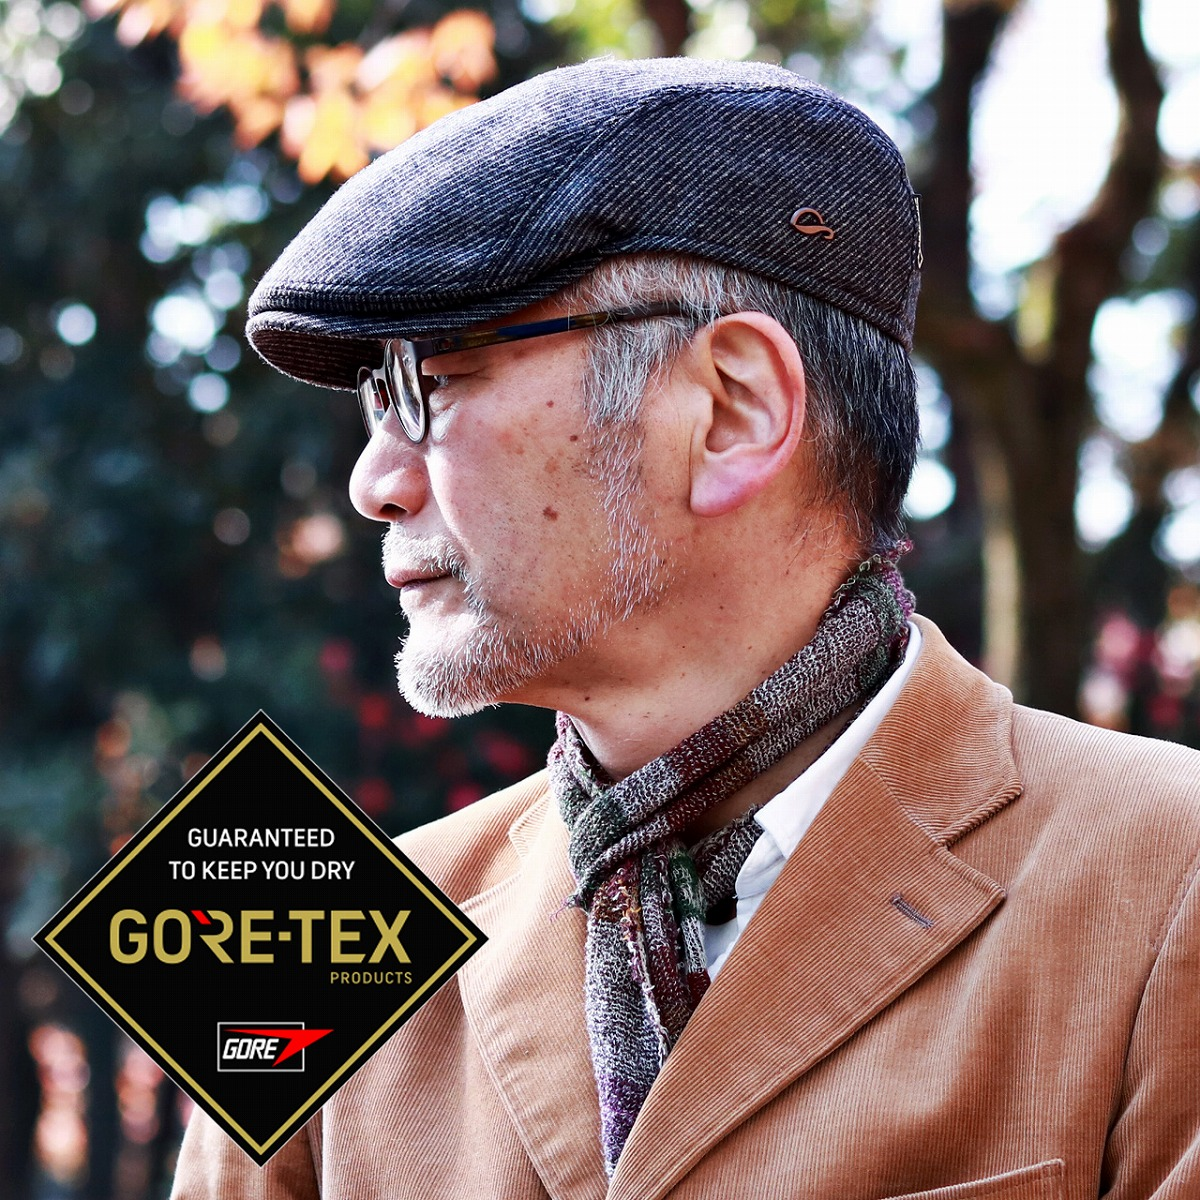 60e9c76b78c3d ELEHELM HAT STORE: Gottmann サイズゴットマン hat cold protection men dark gray  (Christmas gift packing lapping free of charge) whom hunting cap GORE-TEX  ...